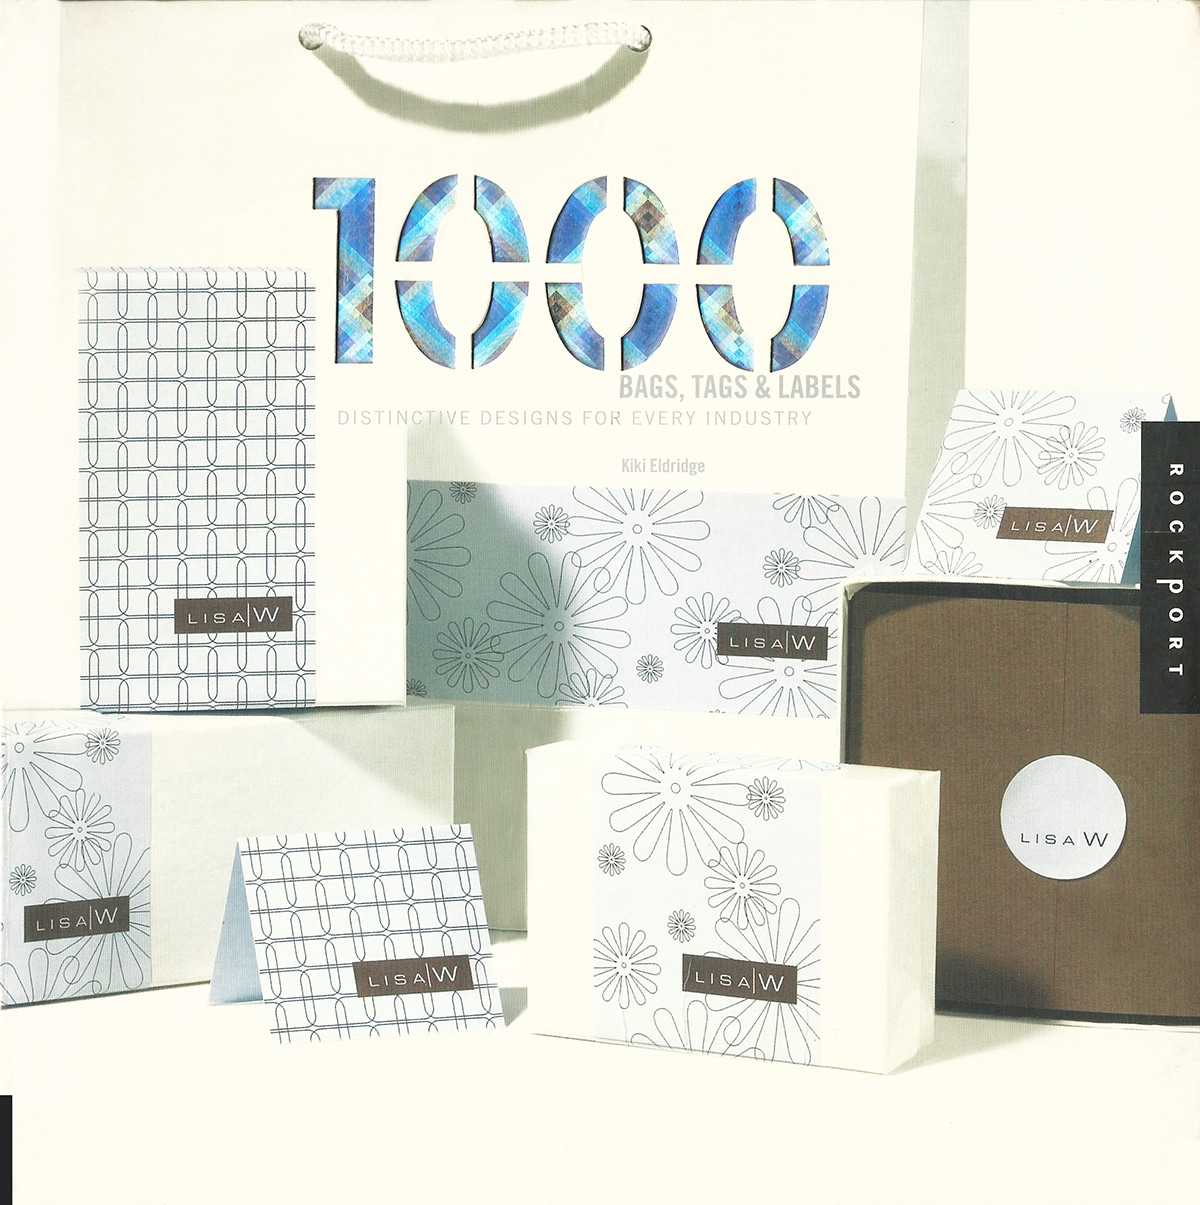 1000 Bags, Tags & Labels: Distinctive Designs for Every Industry